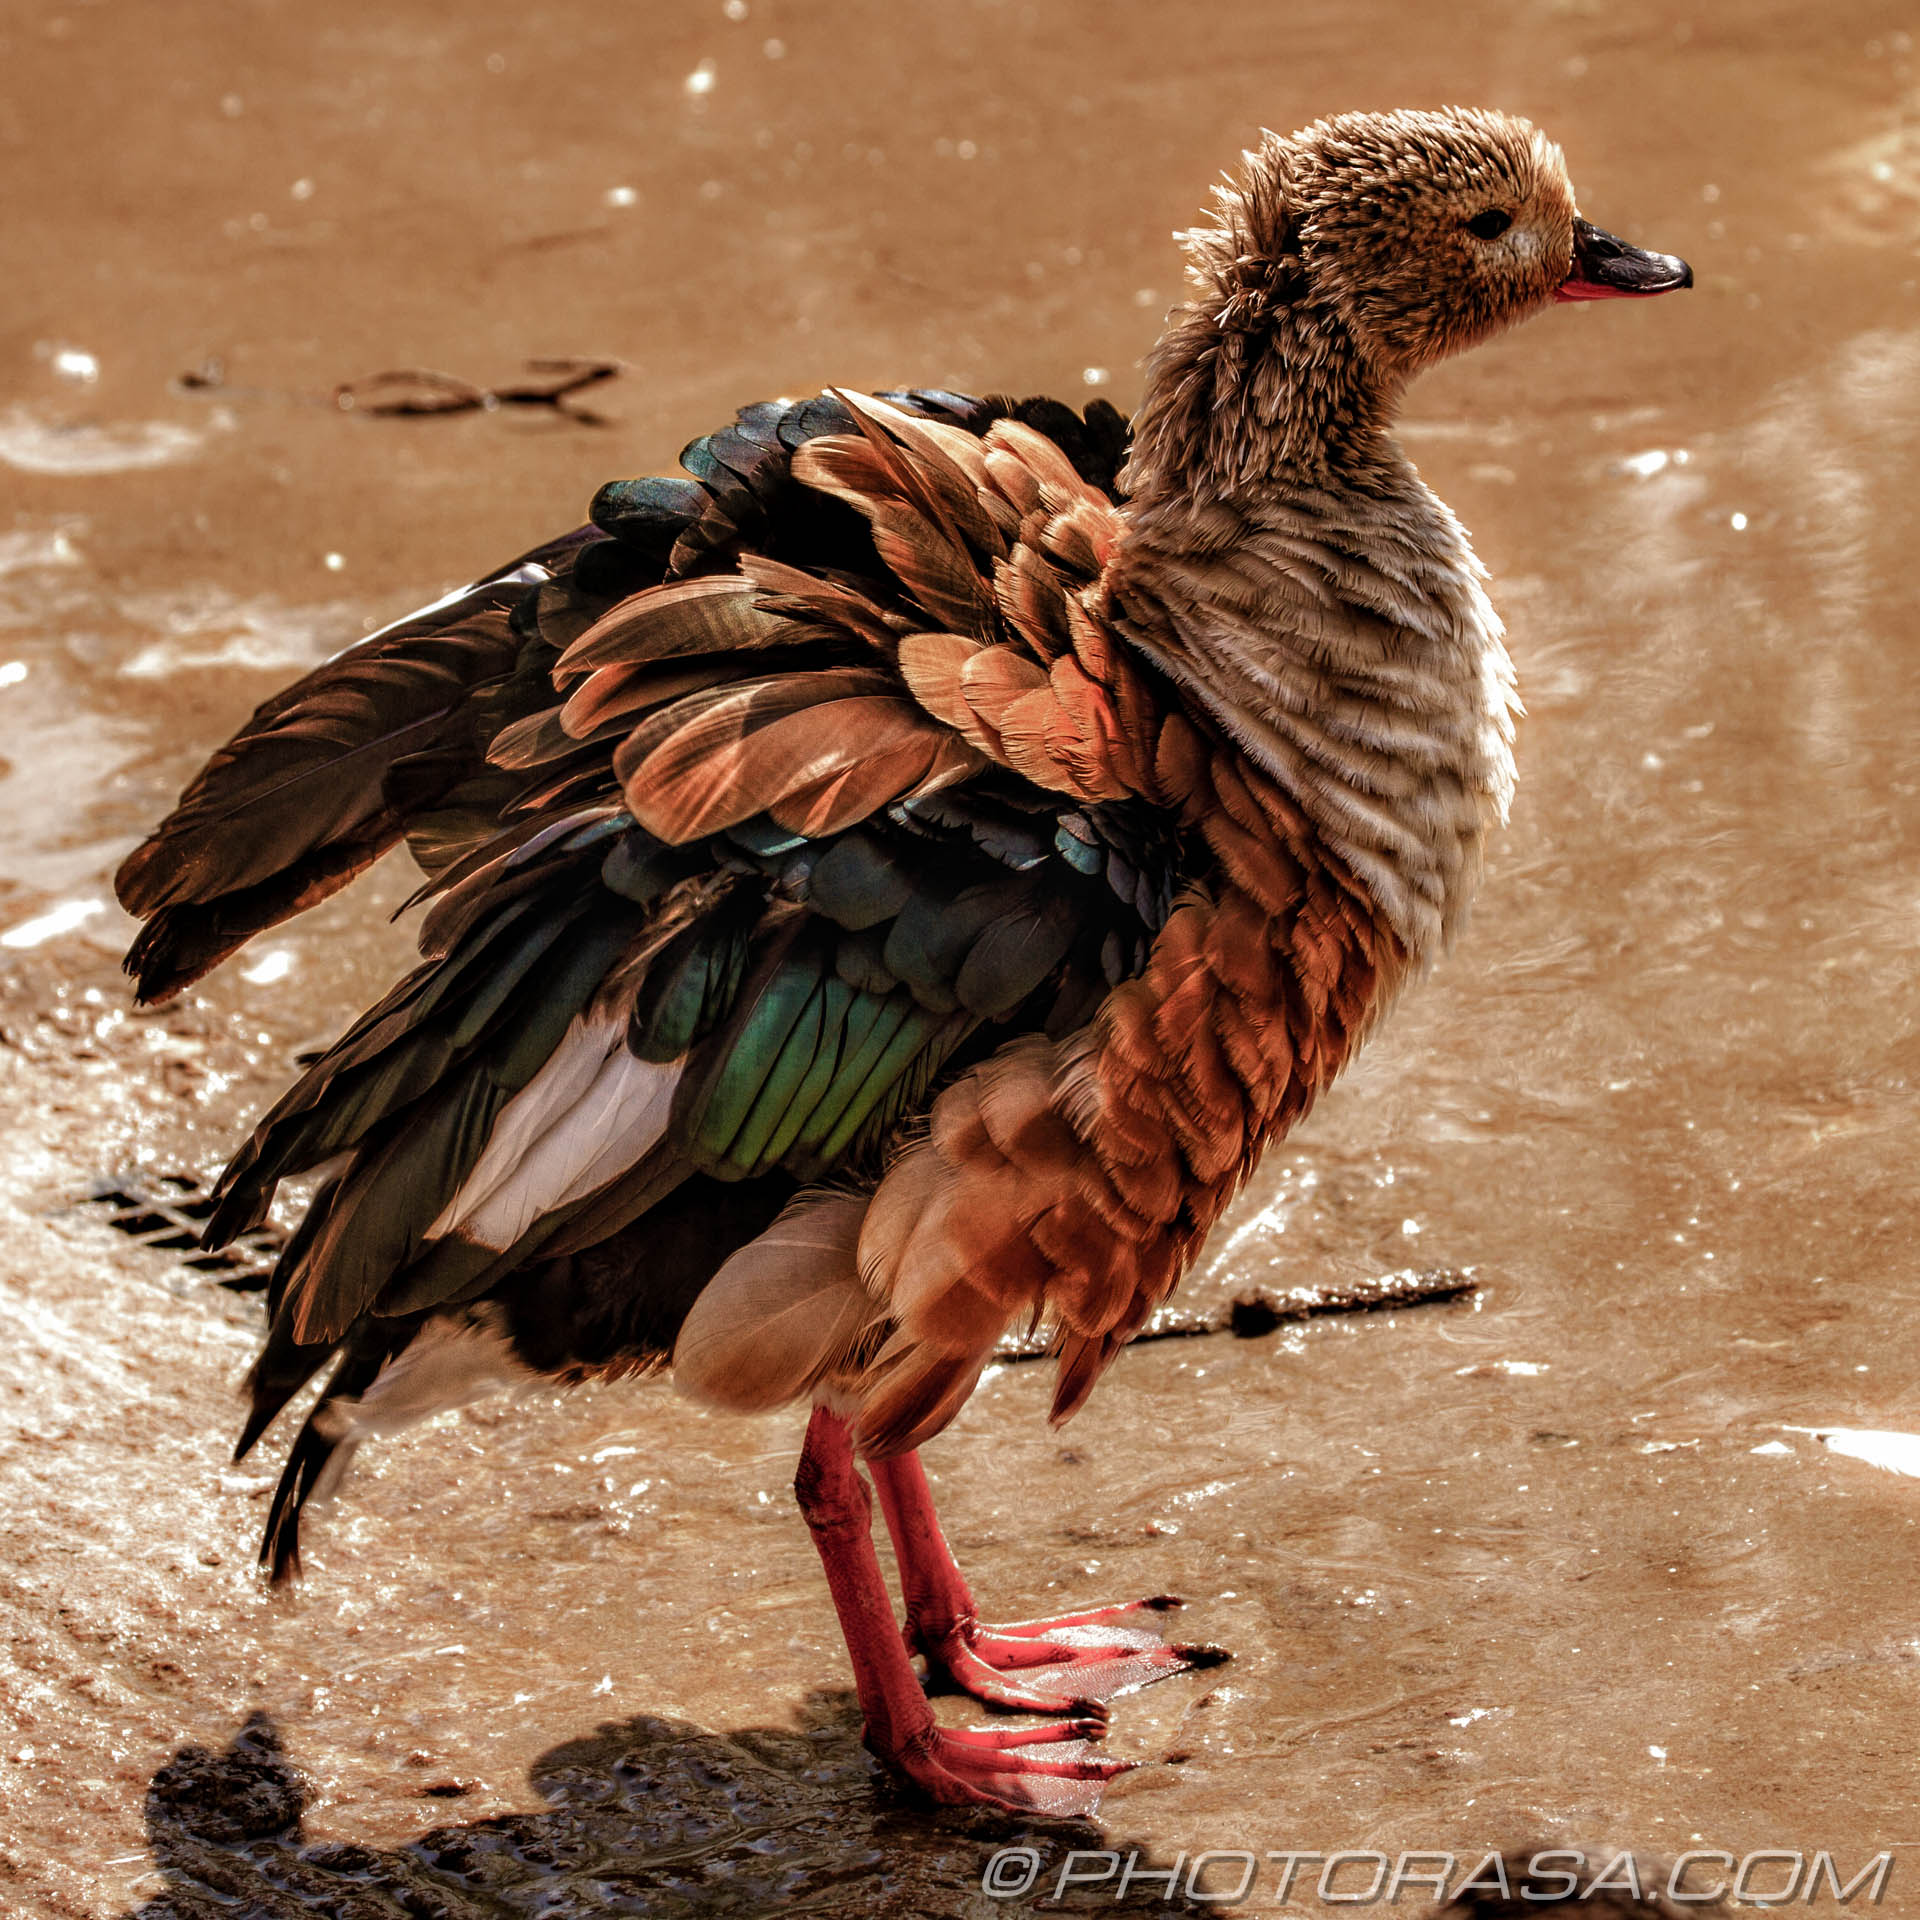 http://photorasa.com/birds-greenworld/orinoco-goose-ruffling-his-feathers/